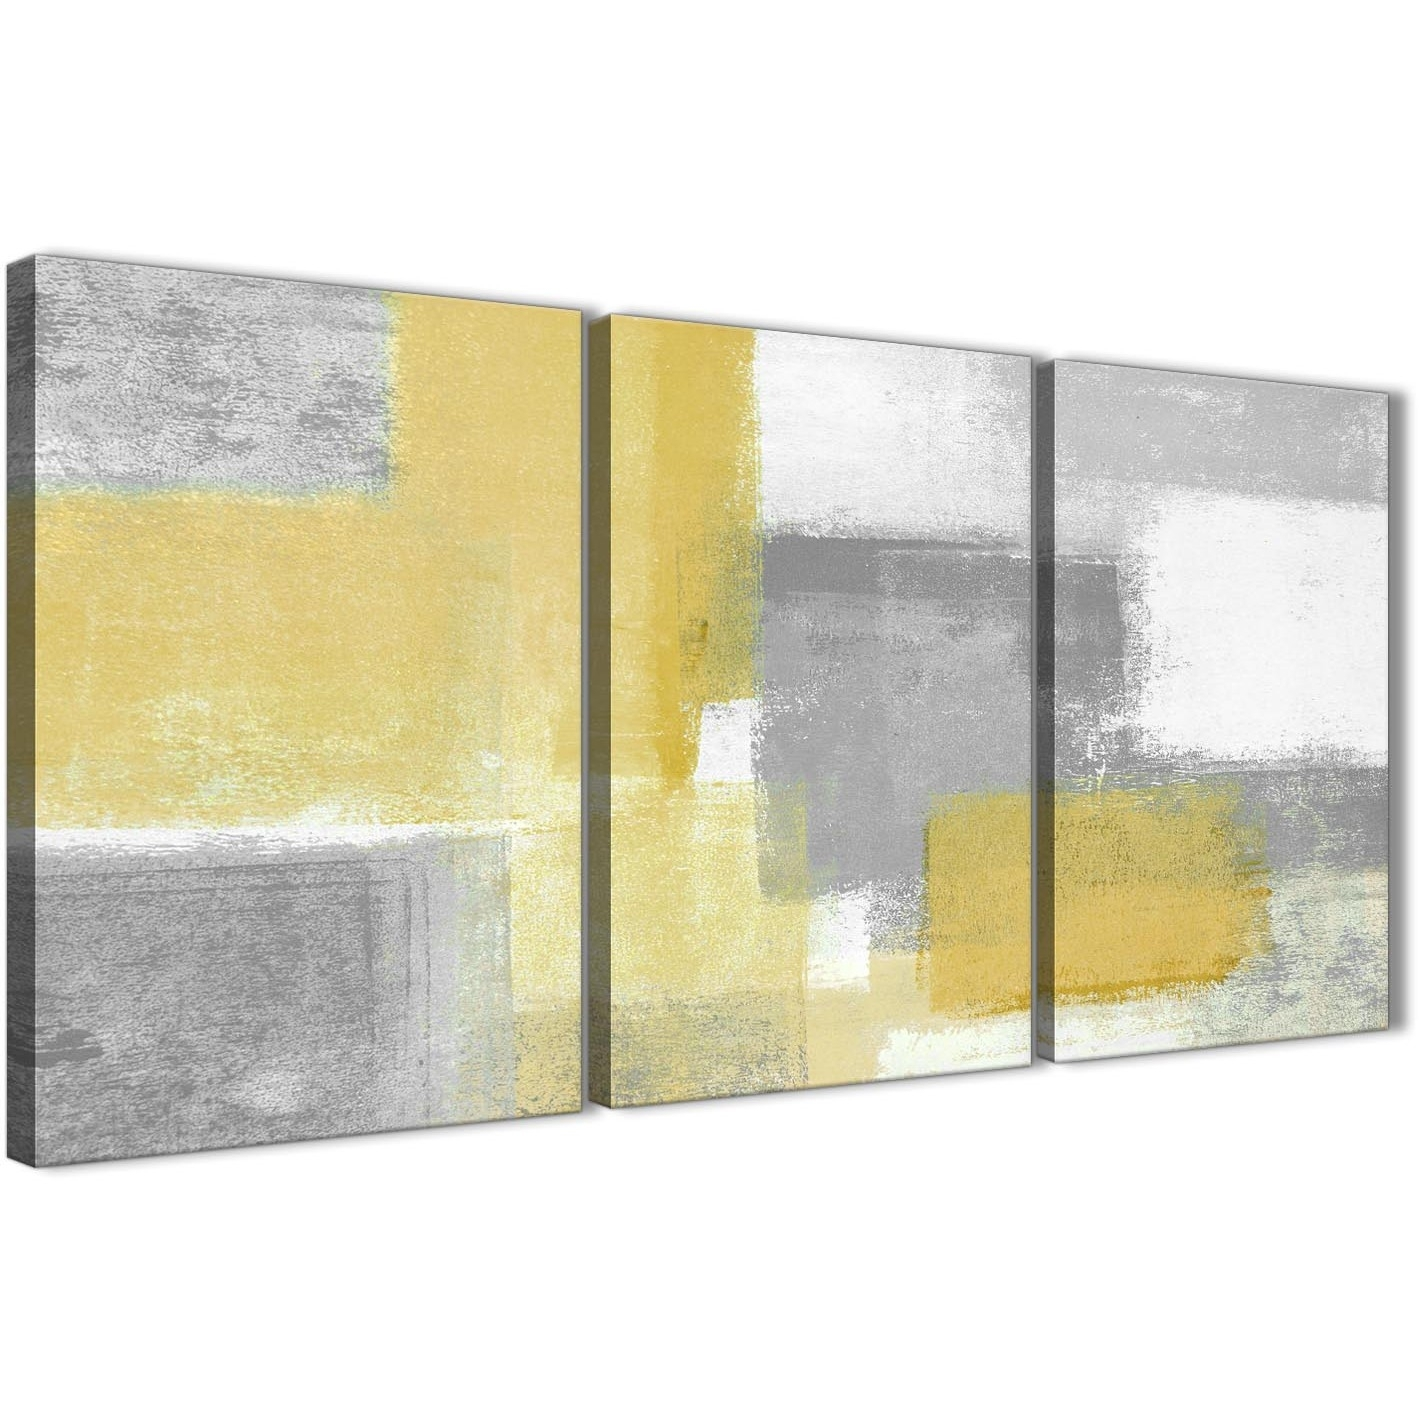 3 Panel Mustard Yellow Grey Kitchen Canvas Wall Art Decor – Abstract With Regard To 2018 Grey Wall Art (Gallery 4 of 20)